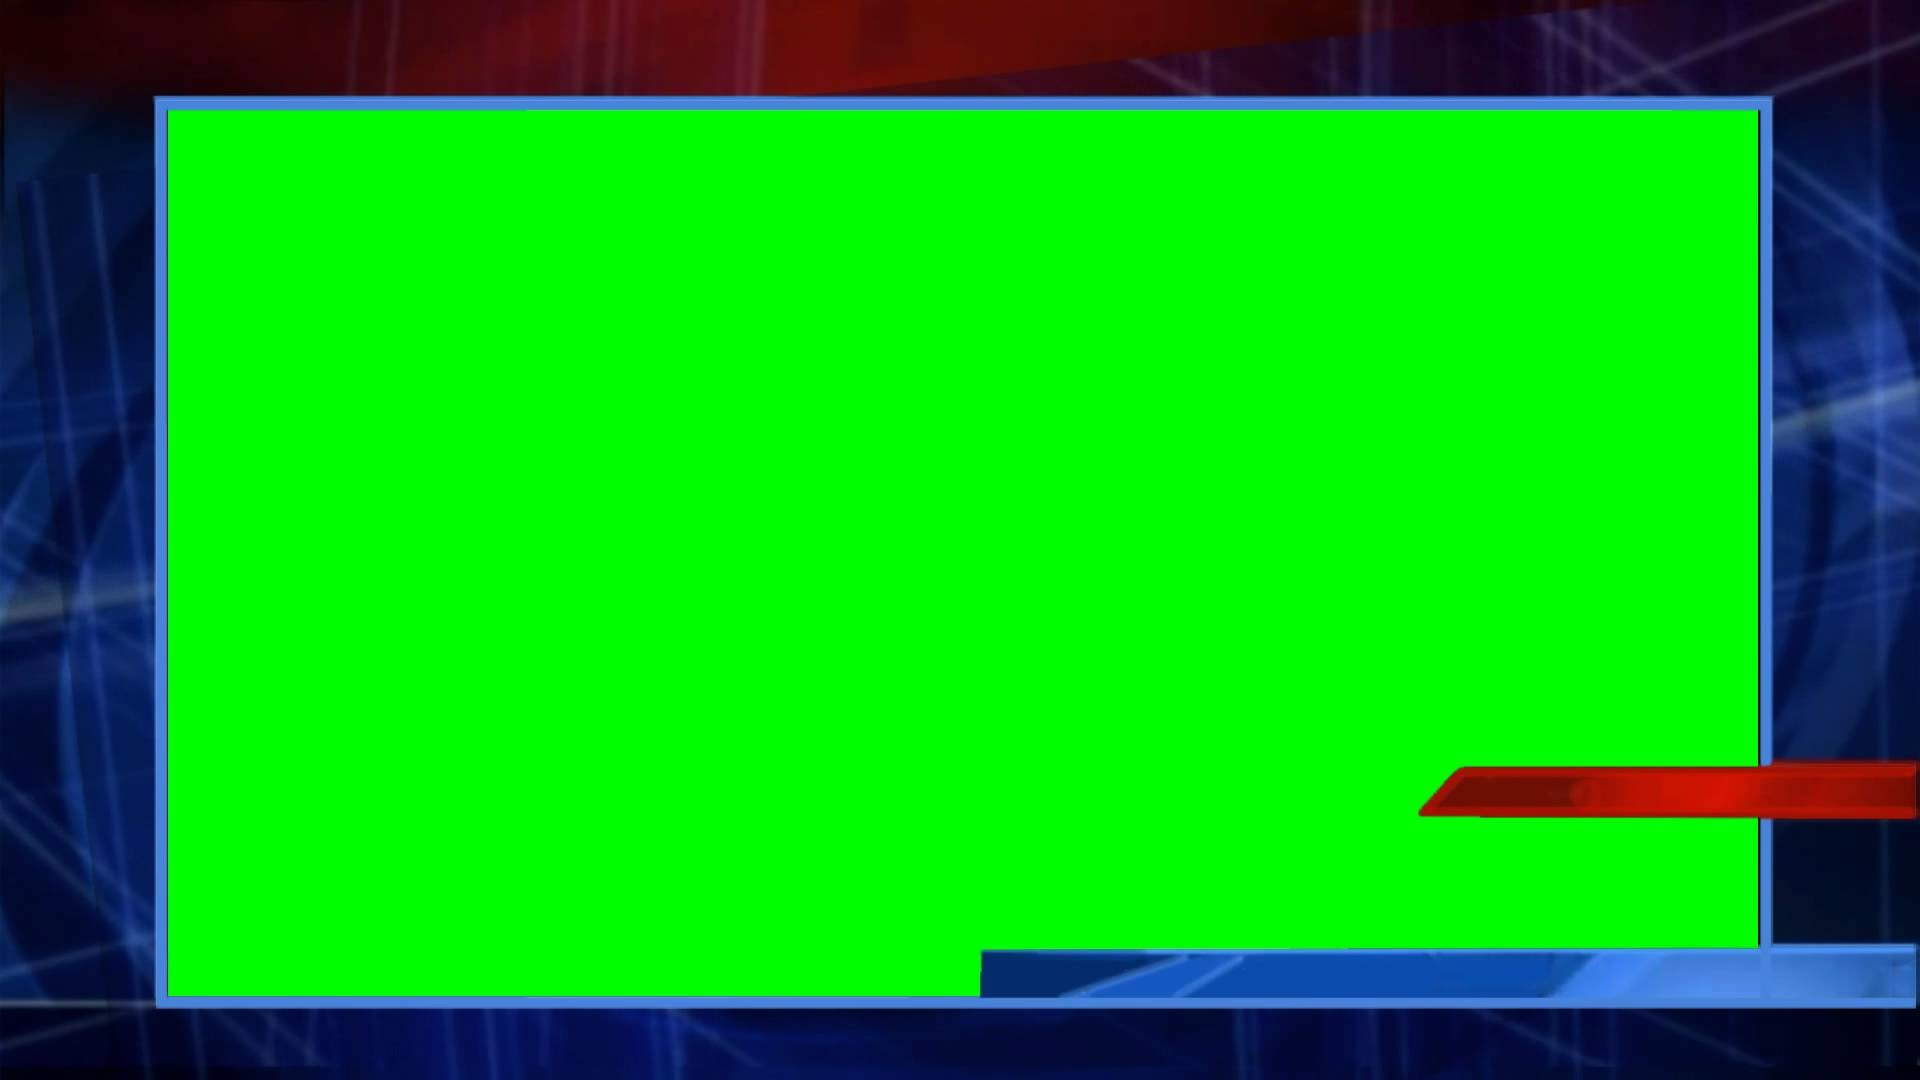 1920x1080 News Overlay Green Screen - Free background video 1080p HD stock video  footage - YouTube